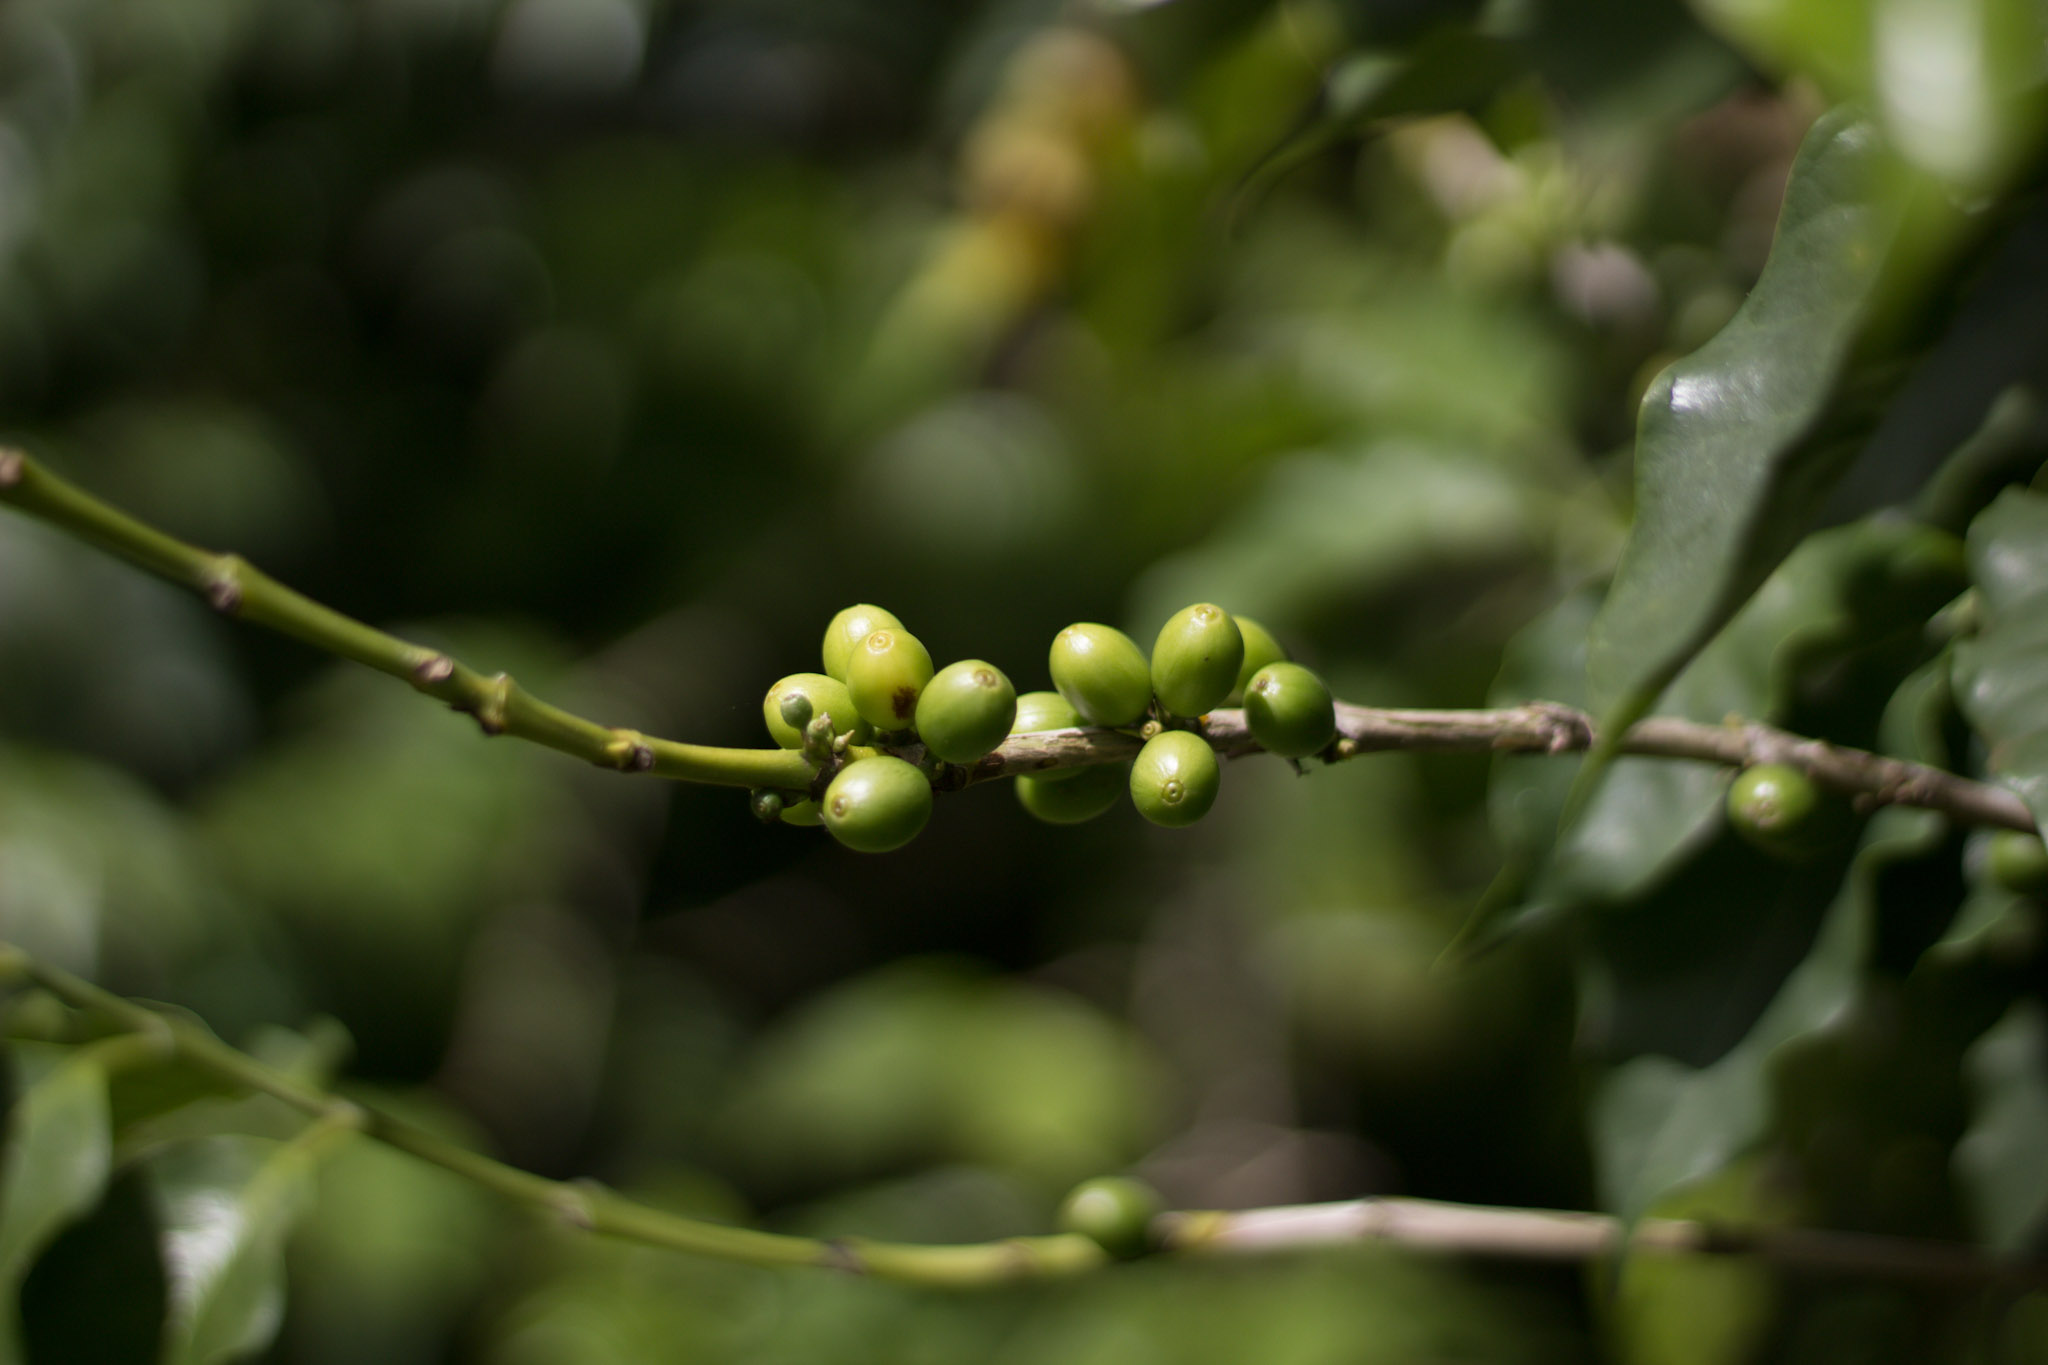 A close up of the coffee beans growing at Green World Coffee Farm.